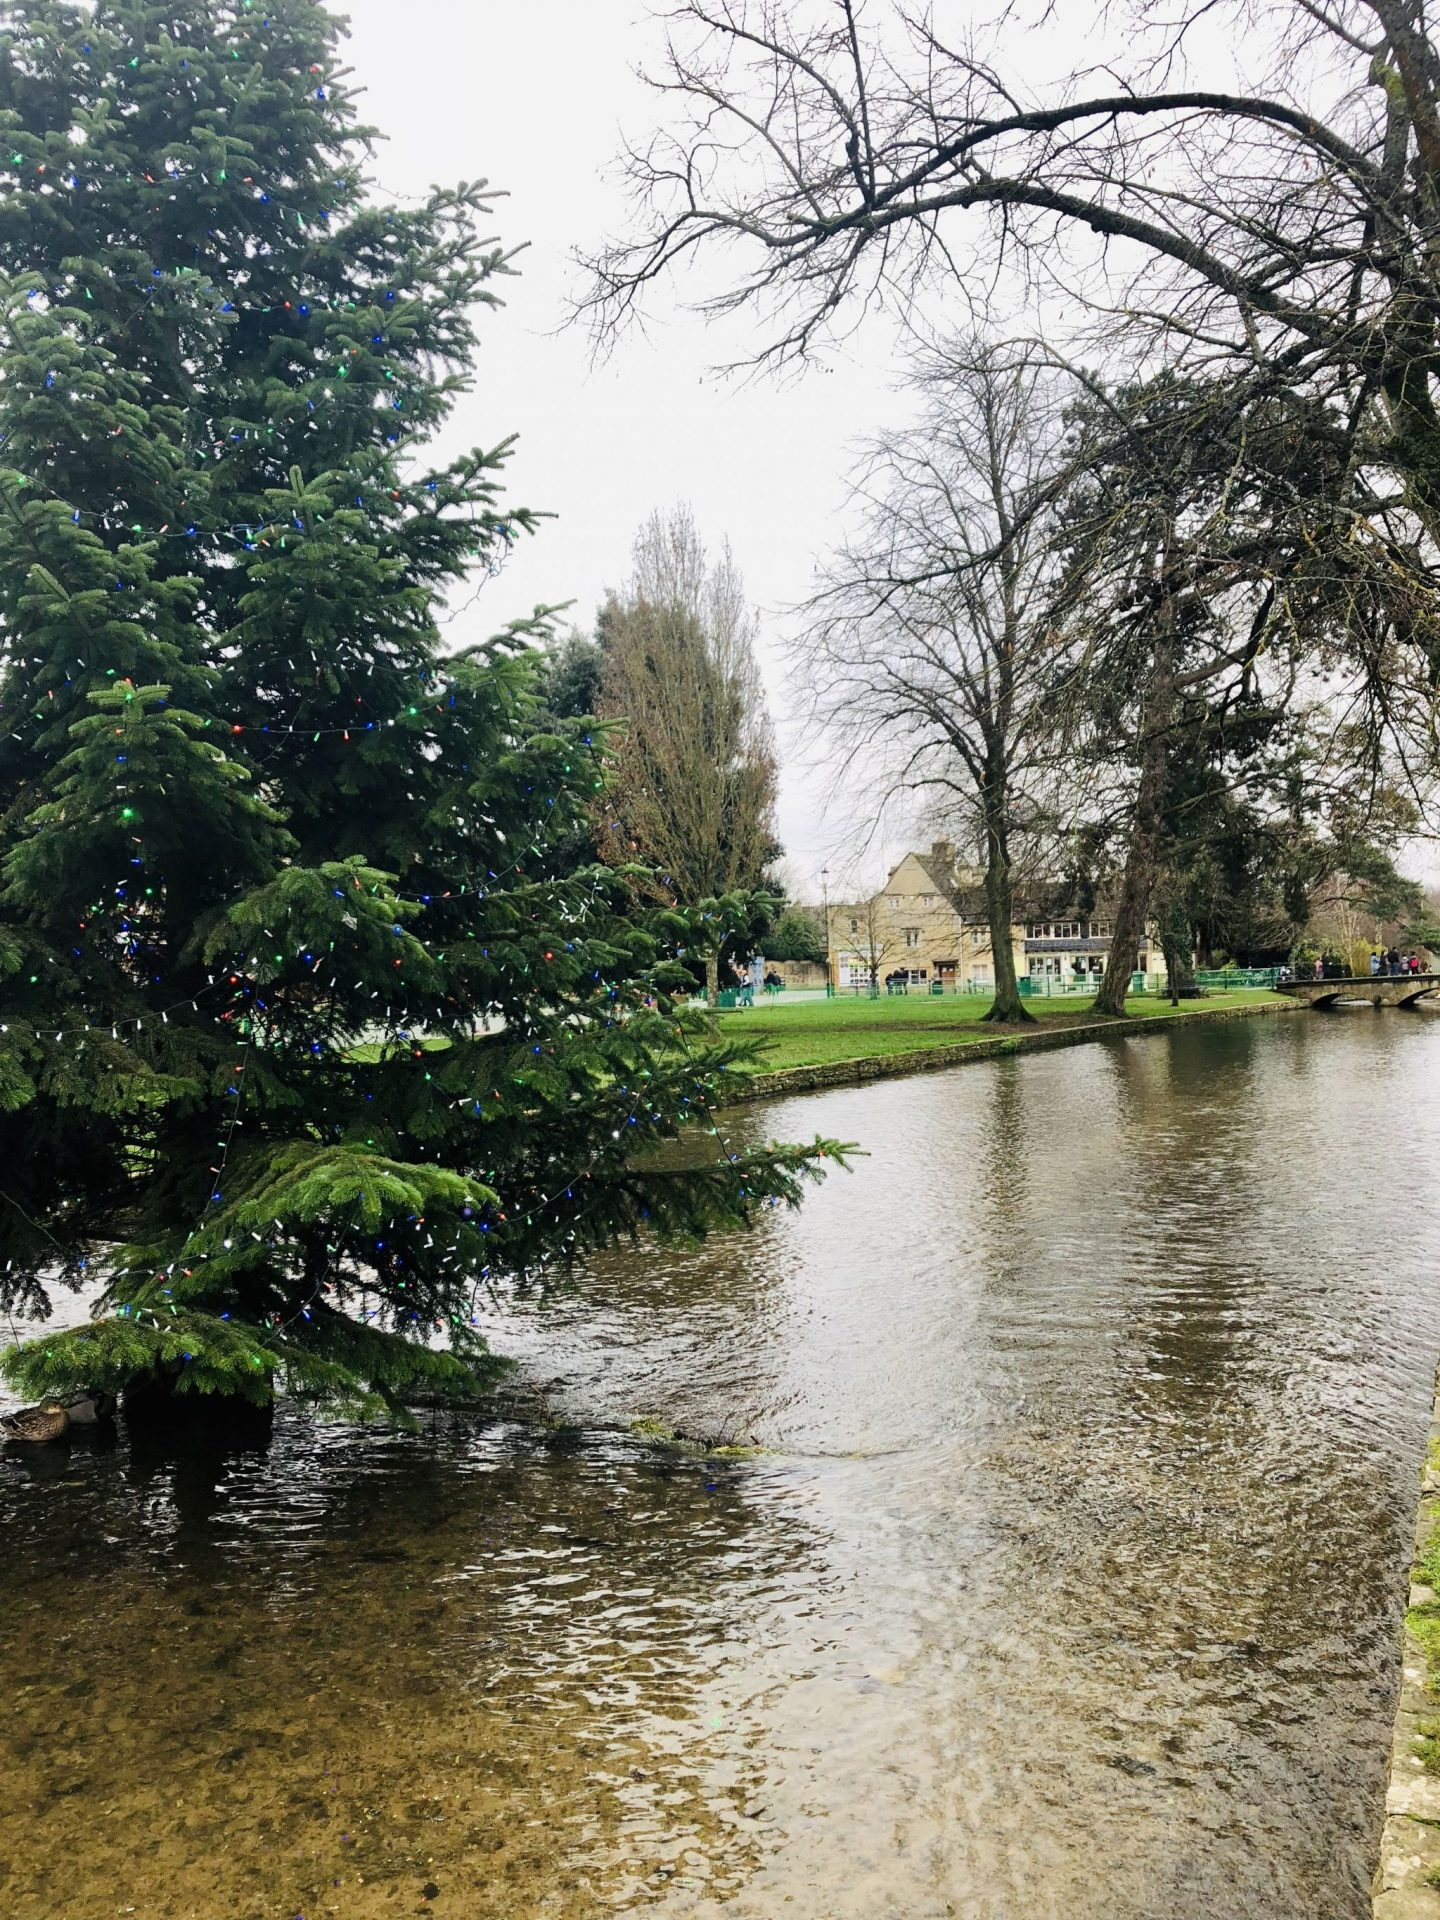 Christmas tree in Bourton-on-the-Water